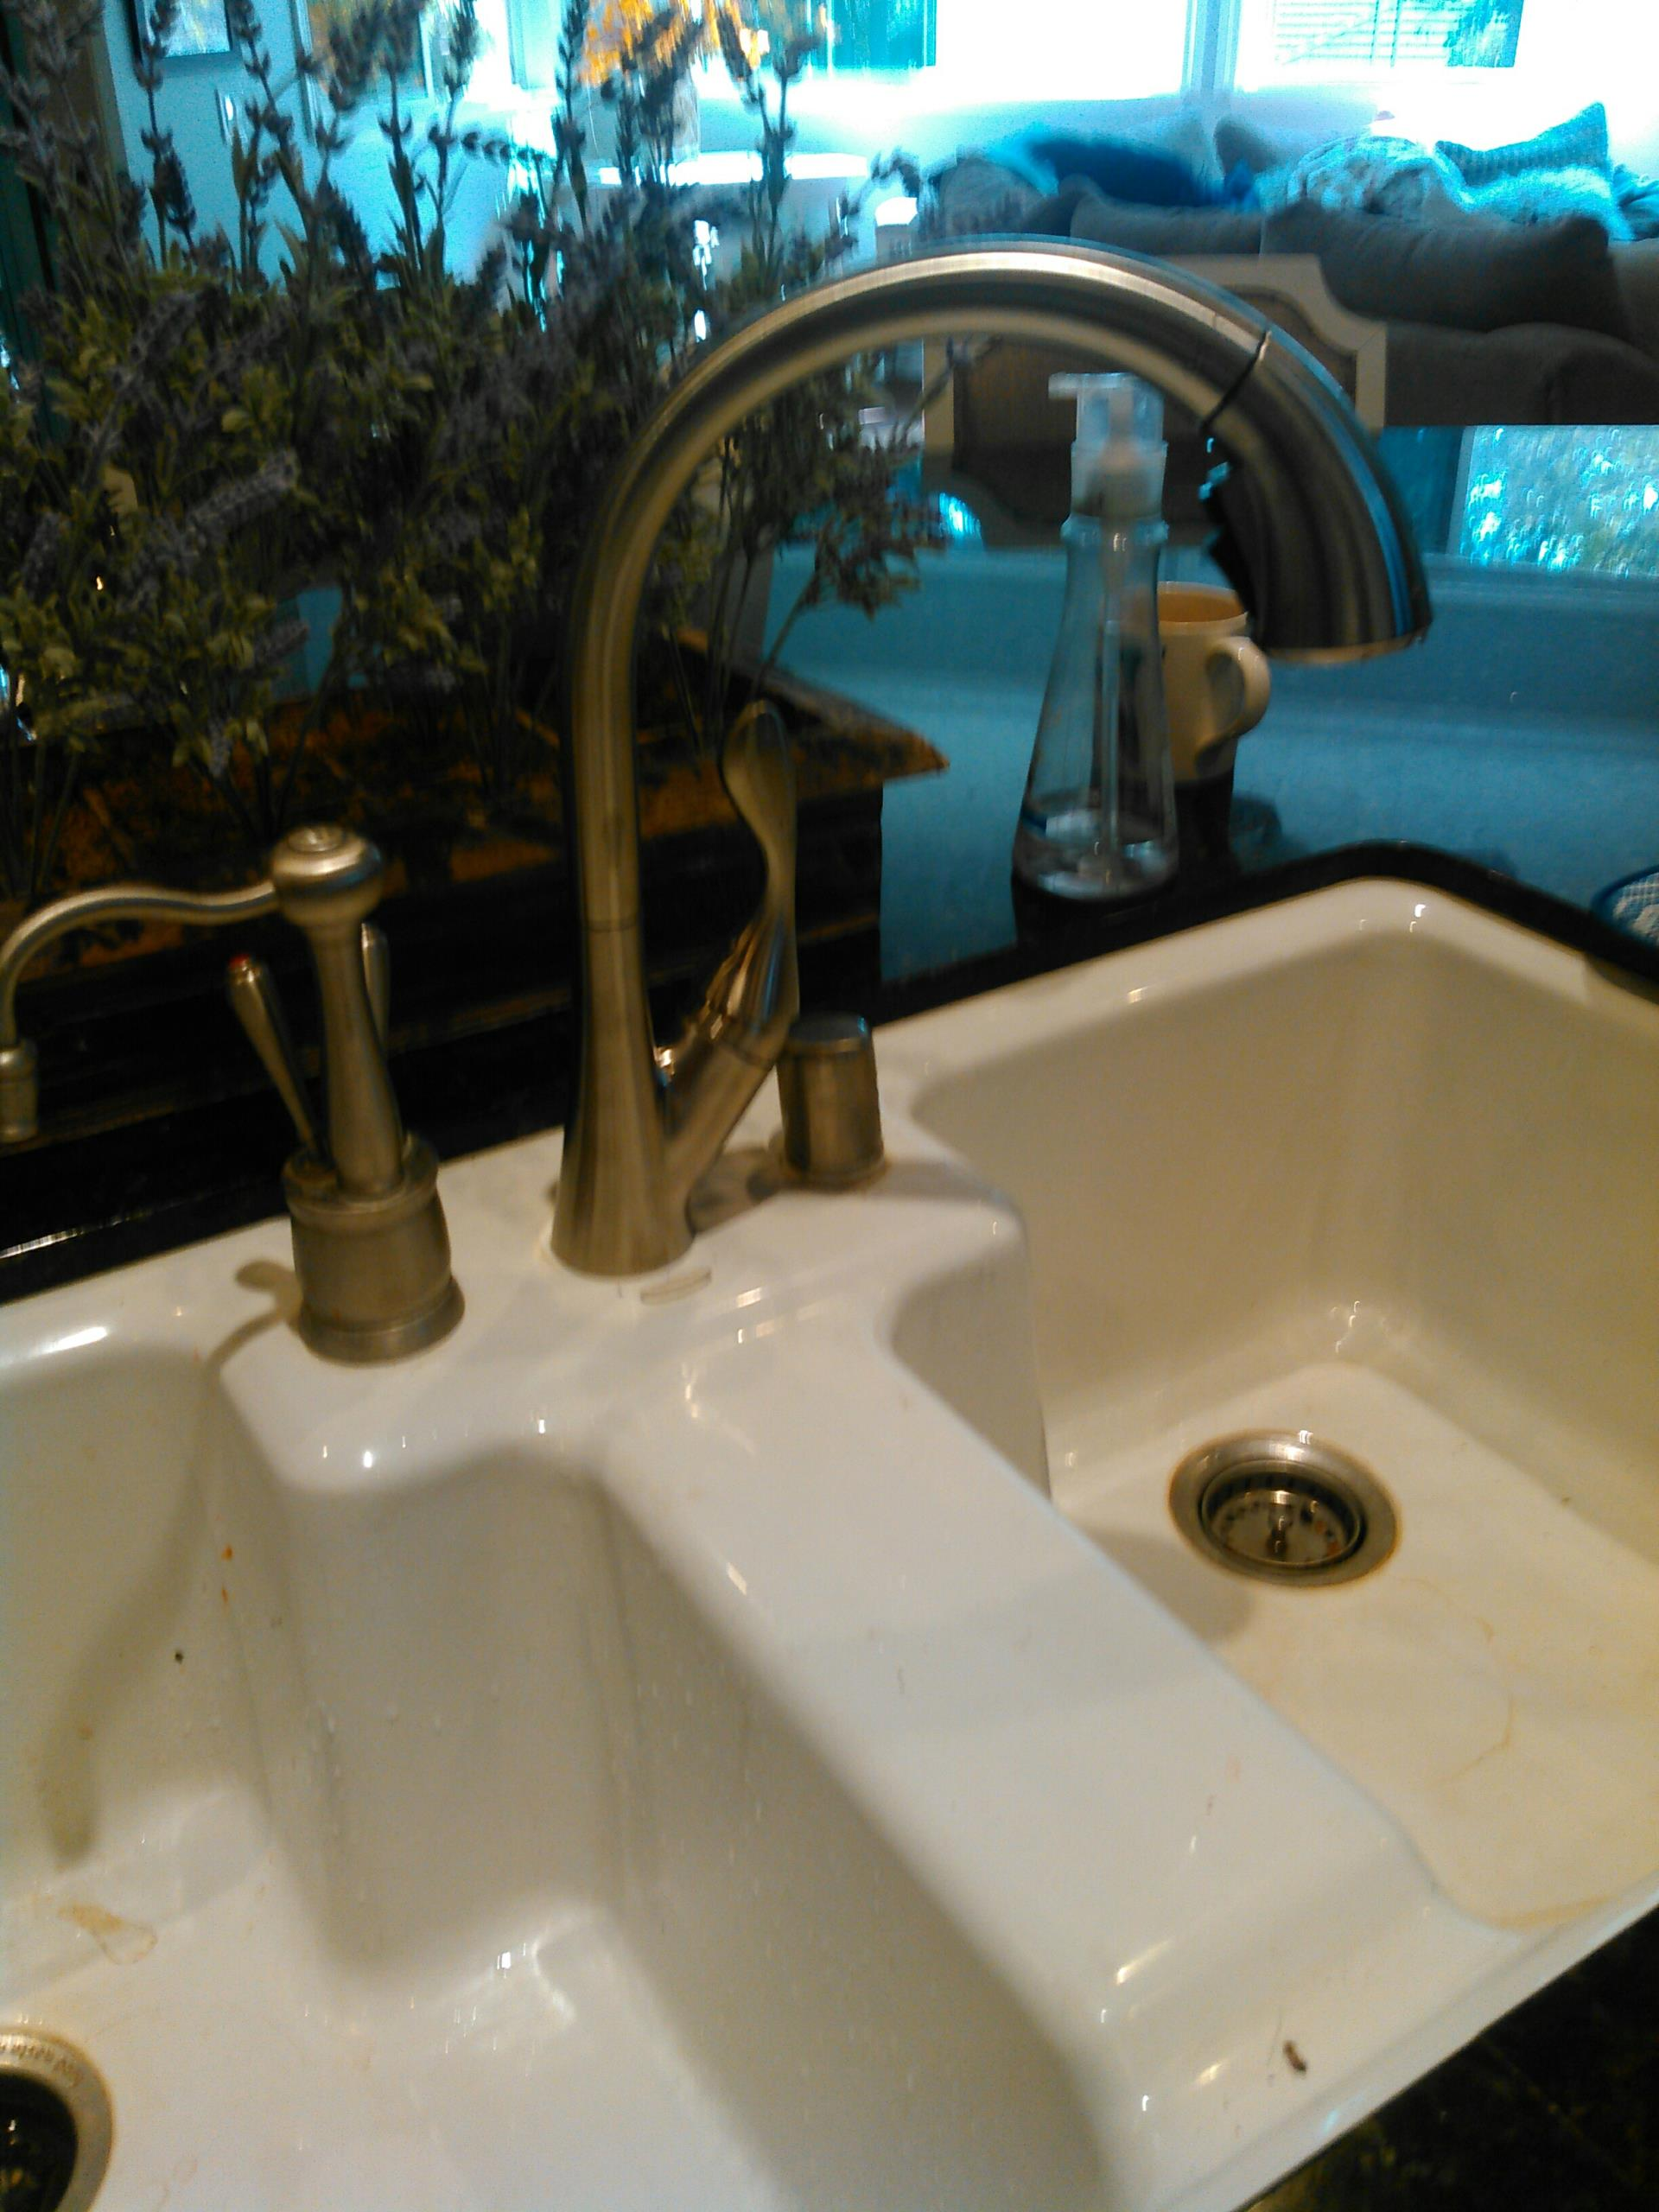 Rancho Cucamonga, CA - Installed new kitchen faucet provided by customer